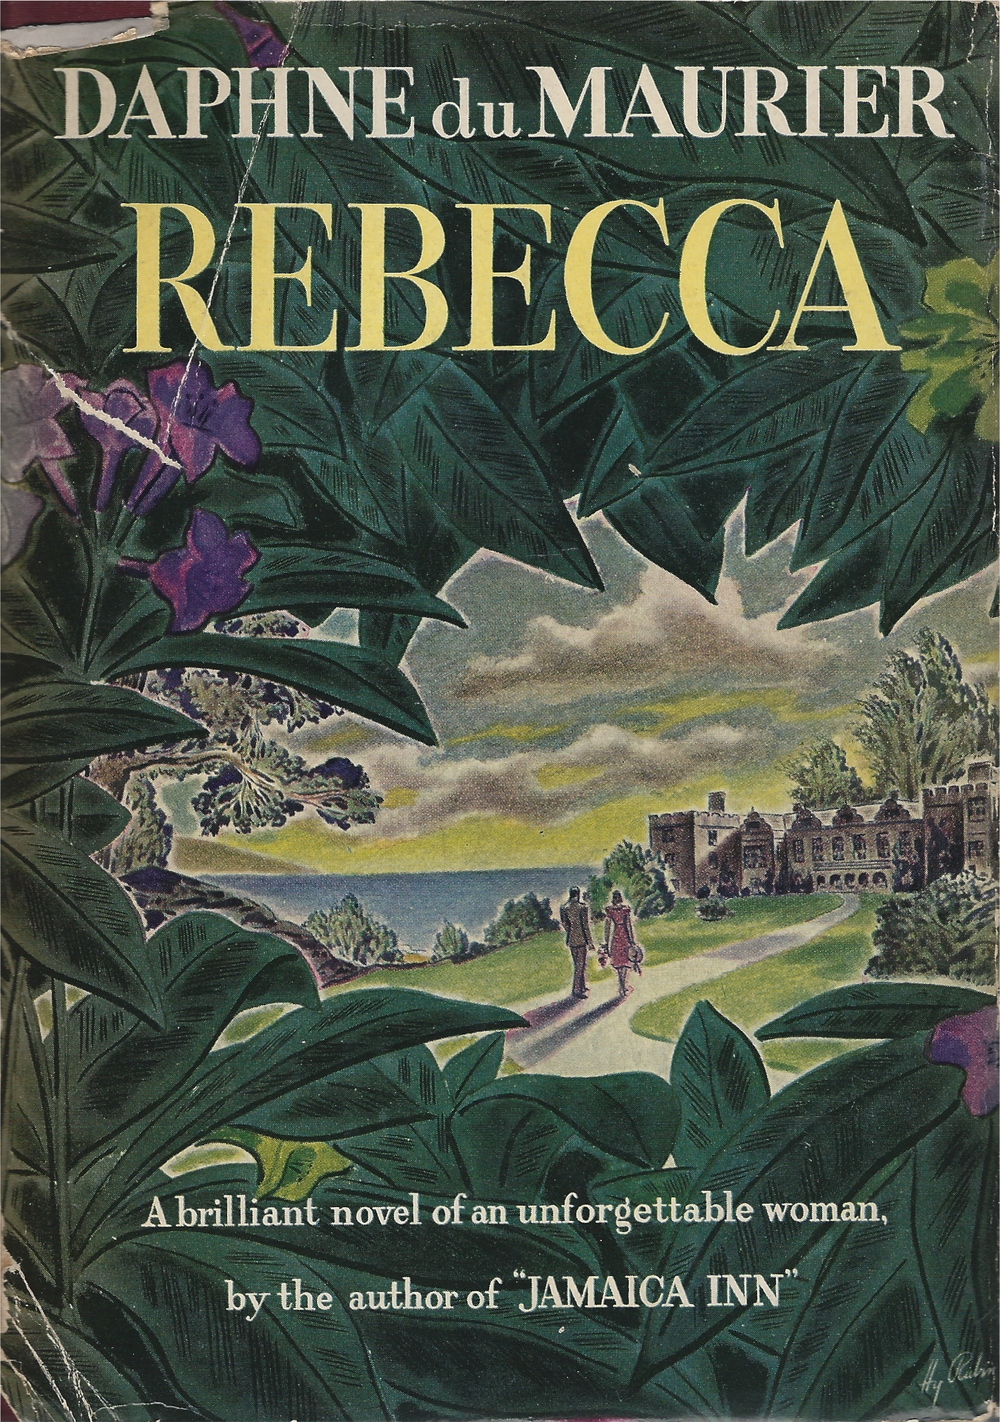 an analysis of the book rebecca by daphne du maurier Daphne du maurier's rebecca is not an obvious choice for  rebecca for feminists  the narrator spends most of the book thinking maxim still misses rebecca,.